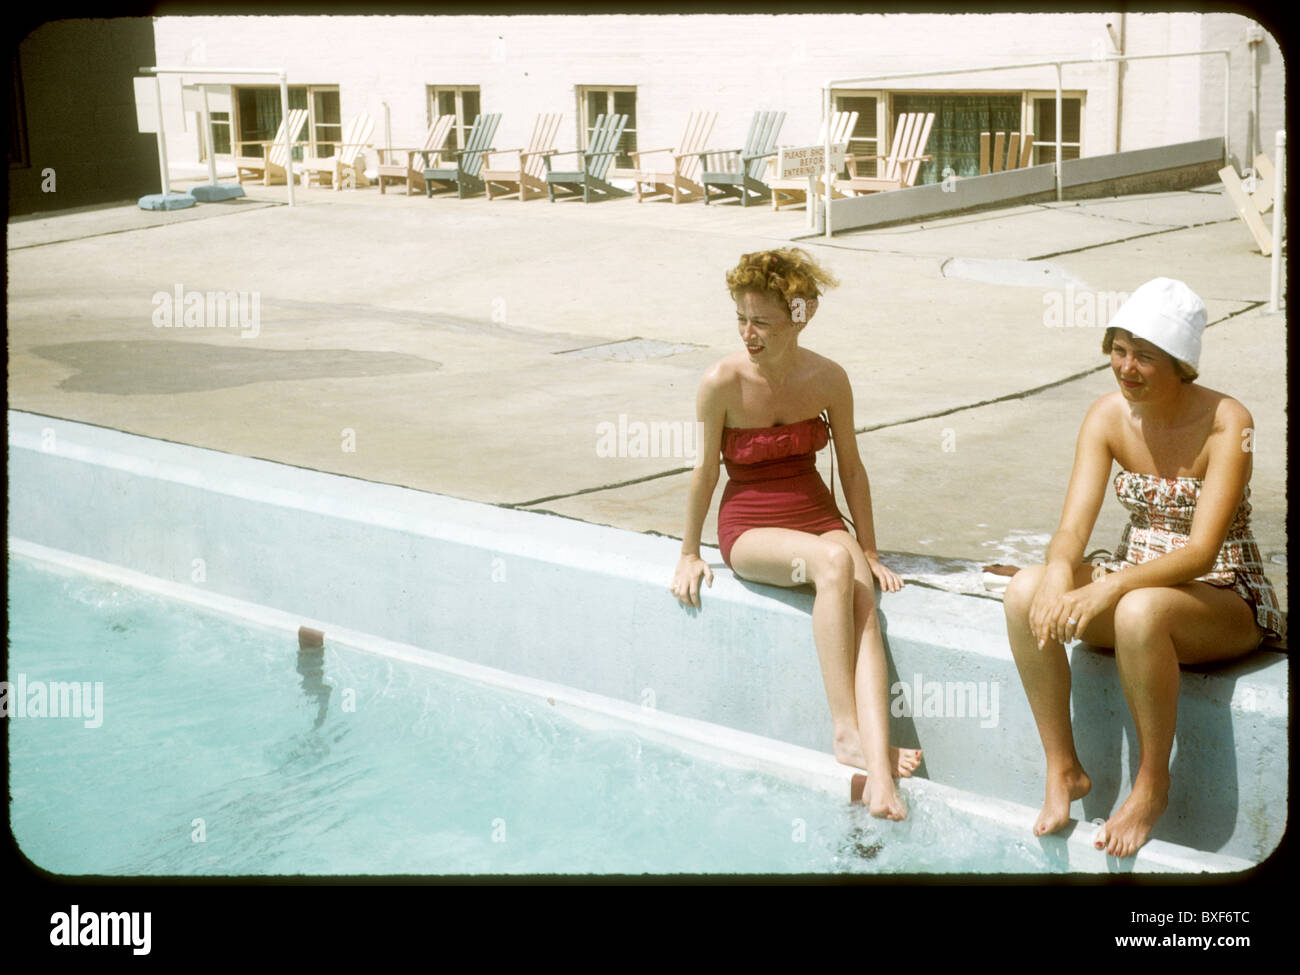 Two pretty women sit on edge of motel hotel swmimming pool fashion bathing suit swim suit 1959s 1950s fashionable - Stock Image